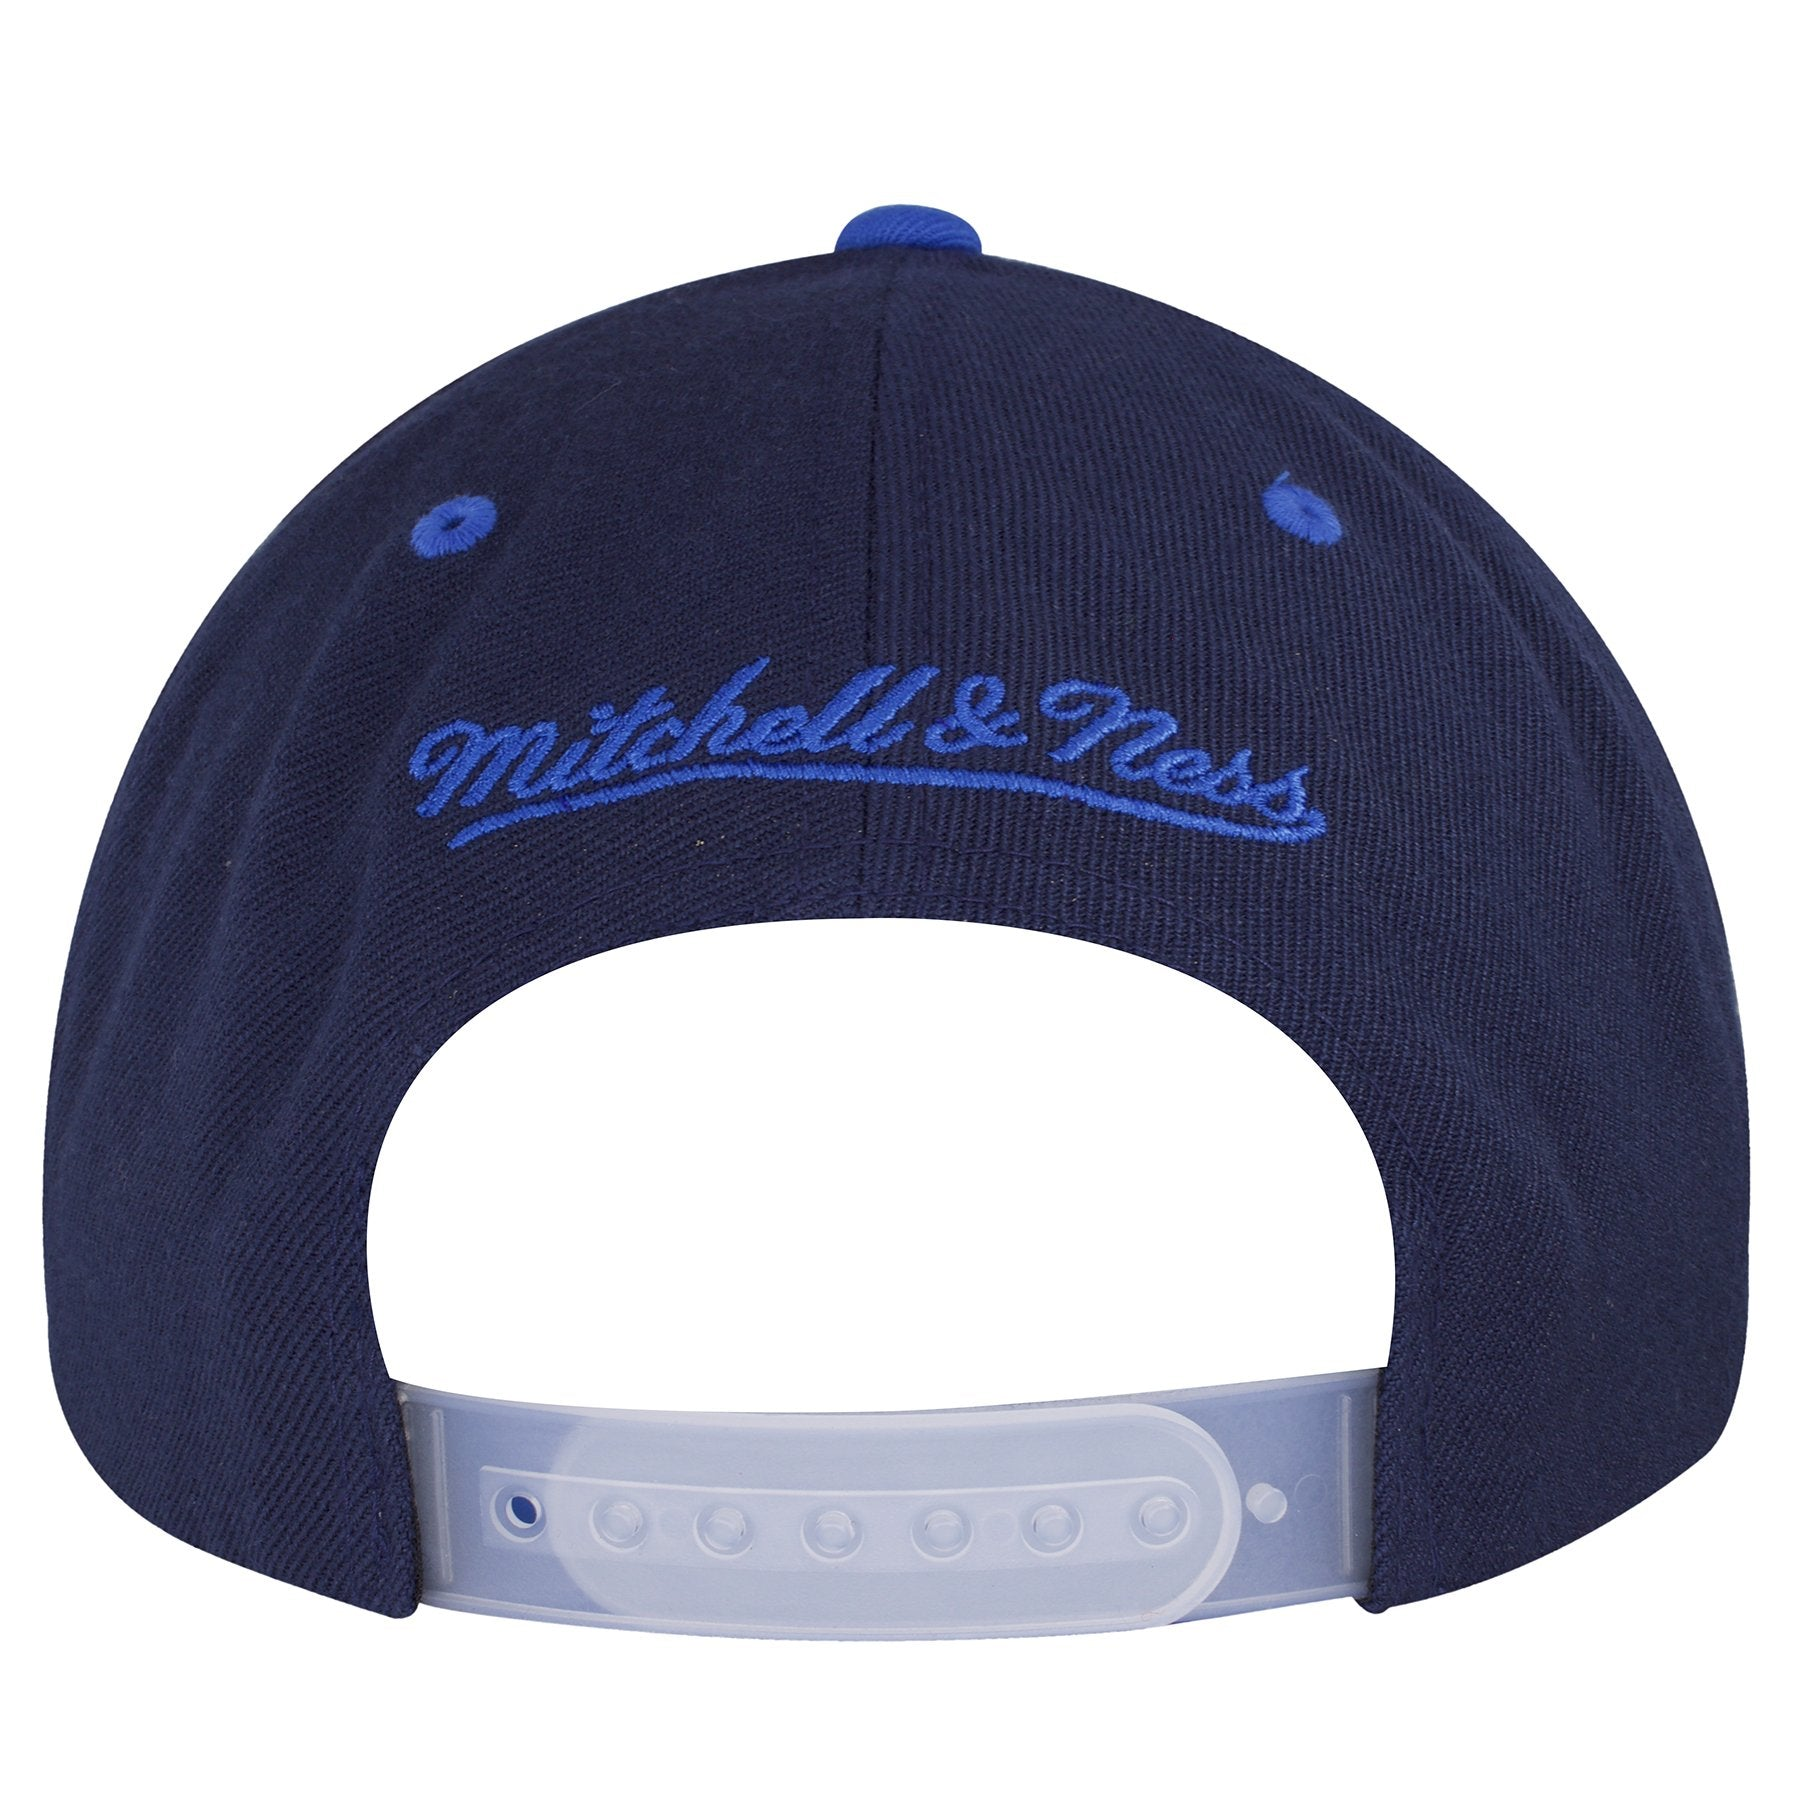 ... the back of the winnipeg jets reflective snapback hat has the mitchell  and ness logo embroidered ... 6e53c1e3778a